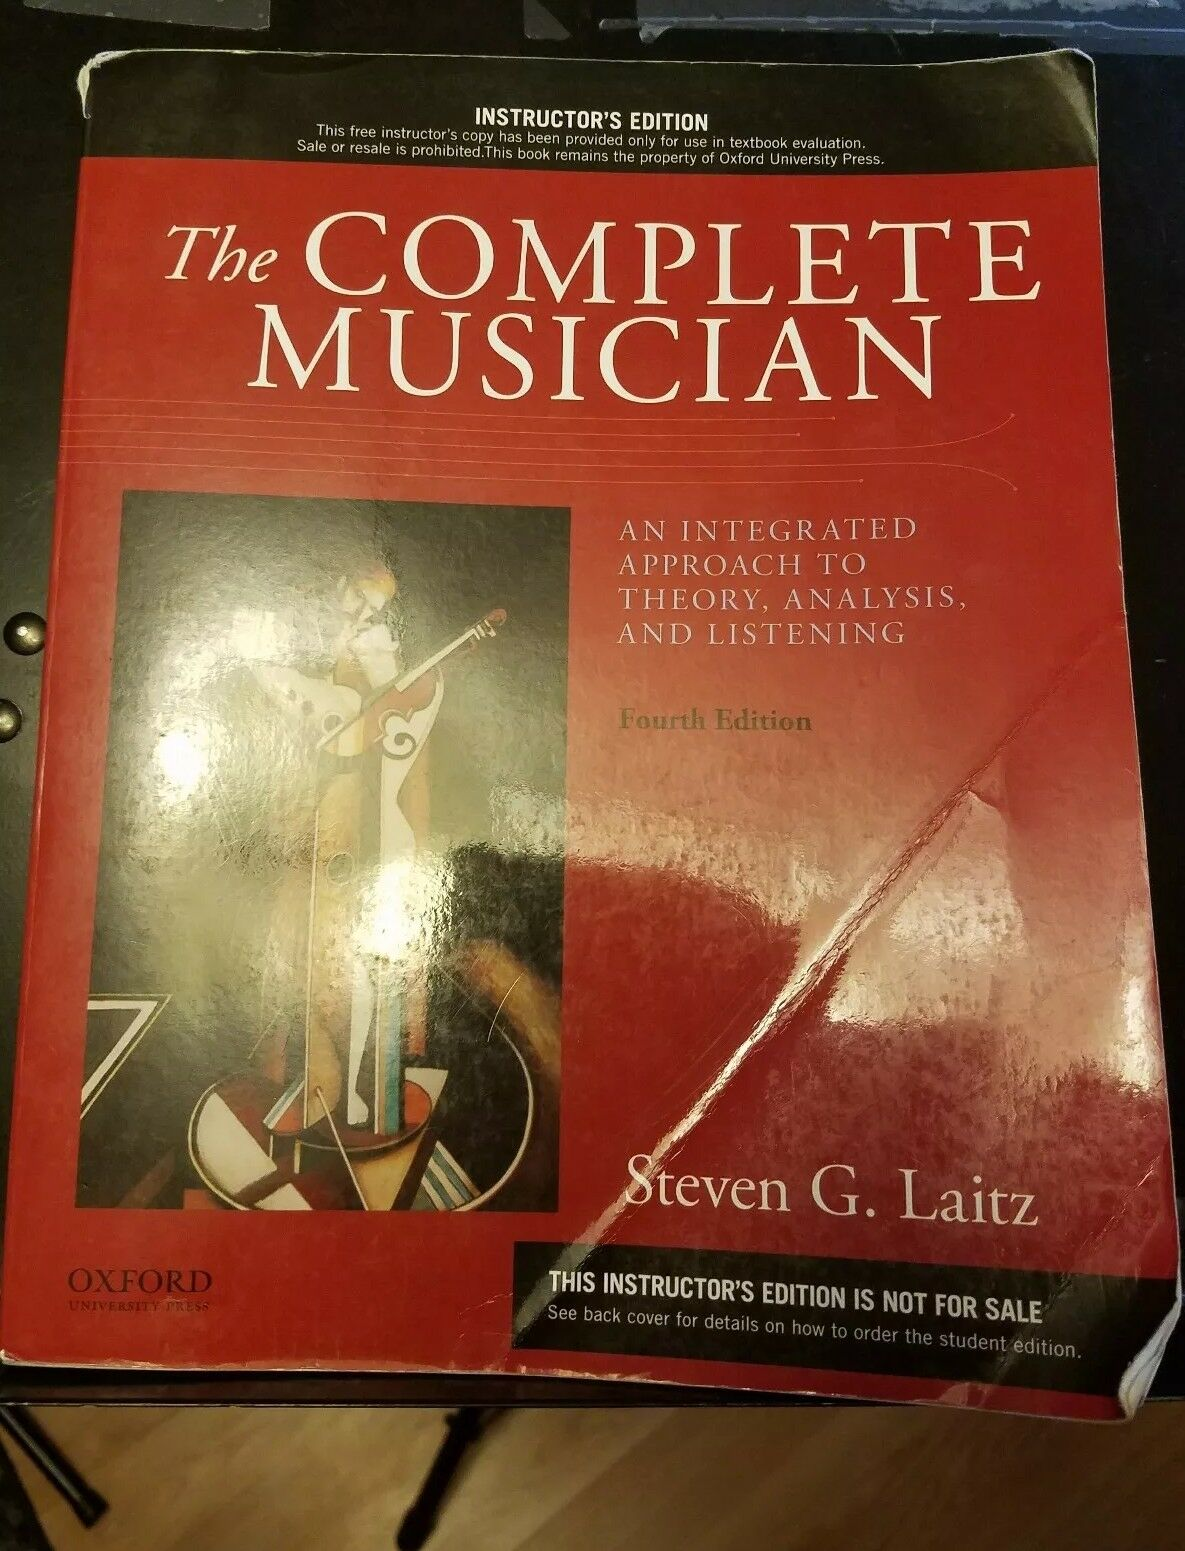 The Complete Musician : An Integrated Approach to Theory, Analysis and  Listening by Steven G. Laitz and Ian Sewell (2015, Paperback)   eBay